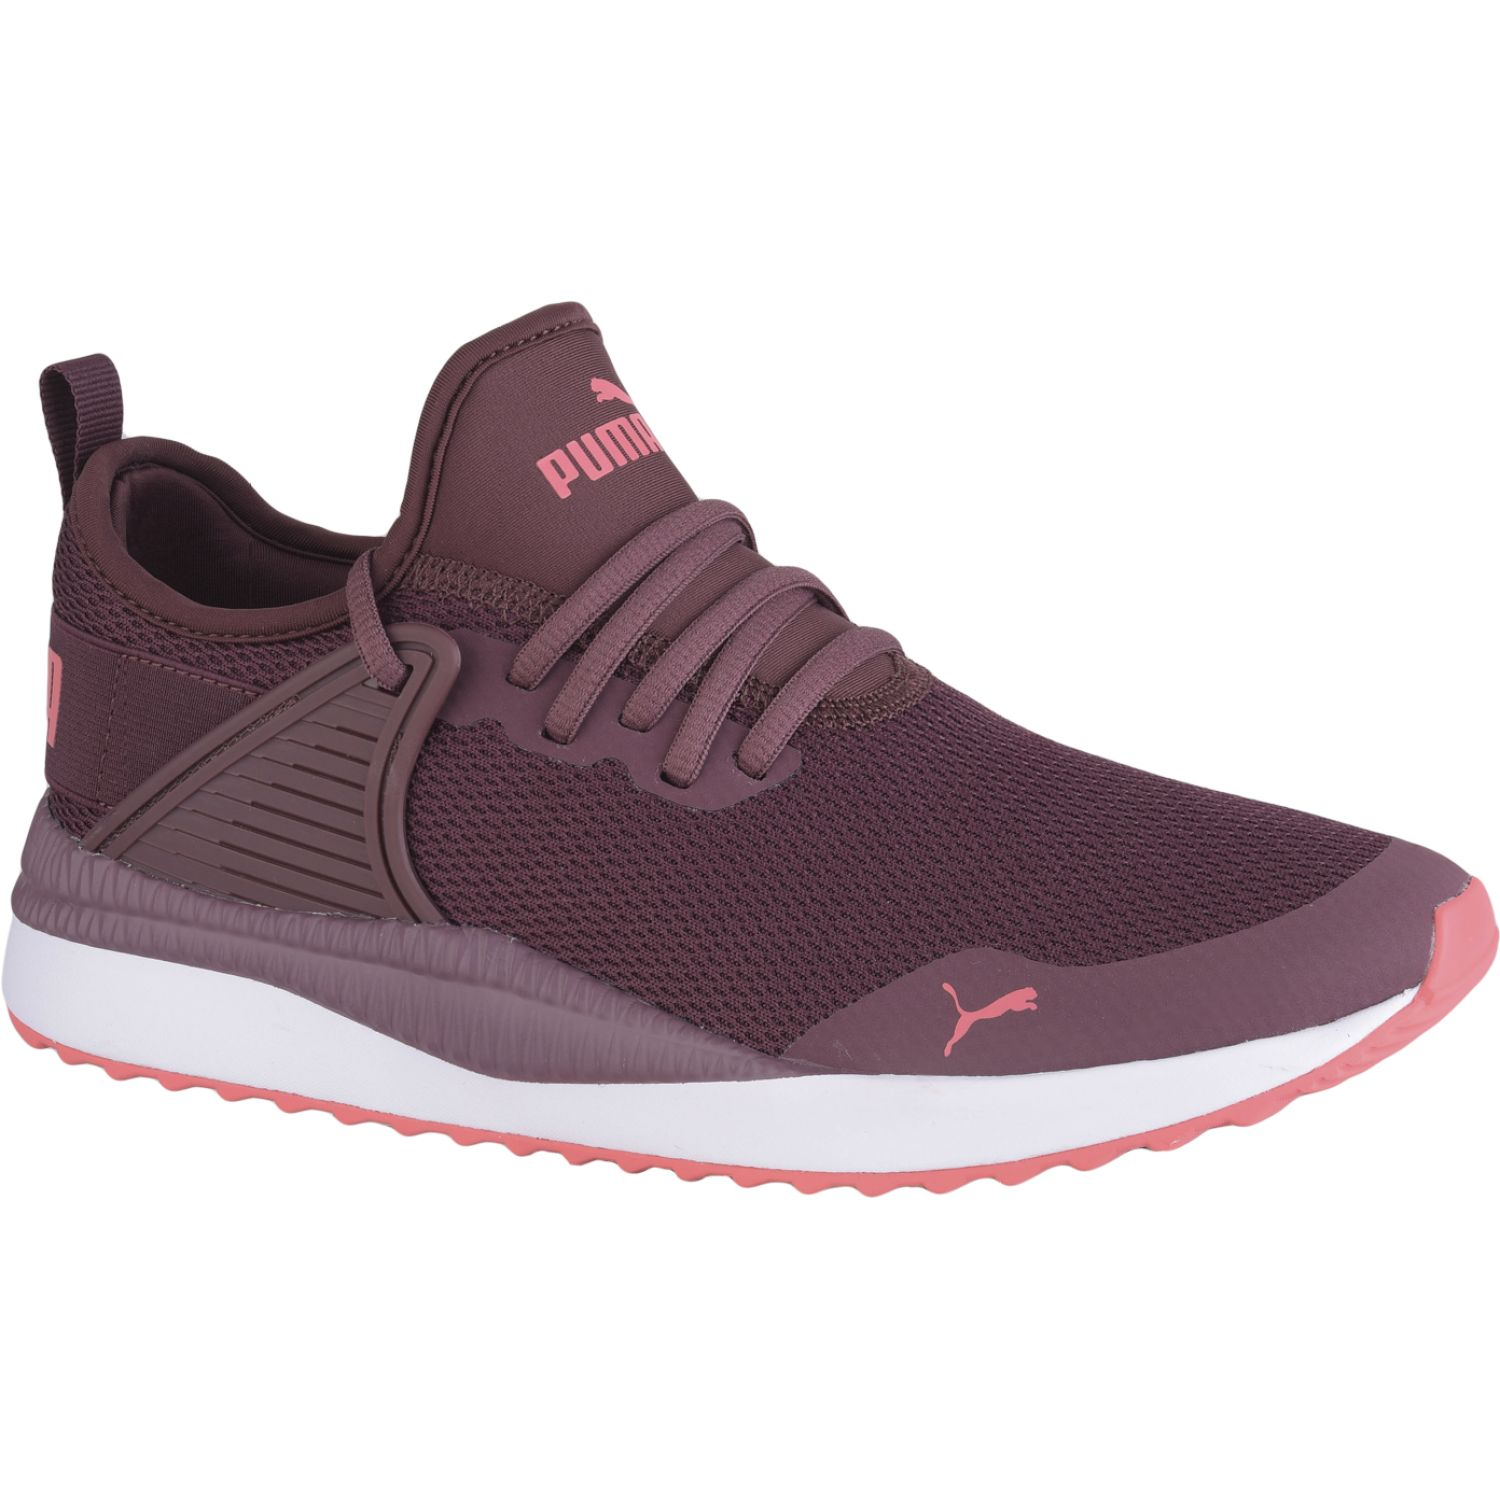 Puma pacer next cage core Guinda Walking